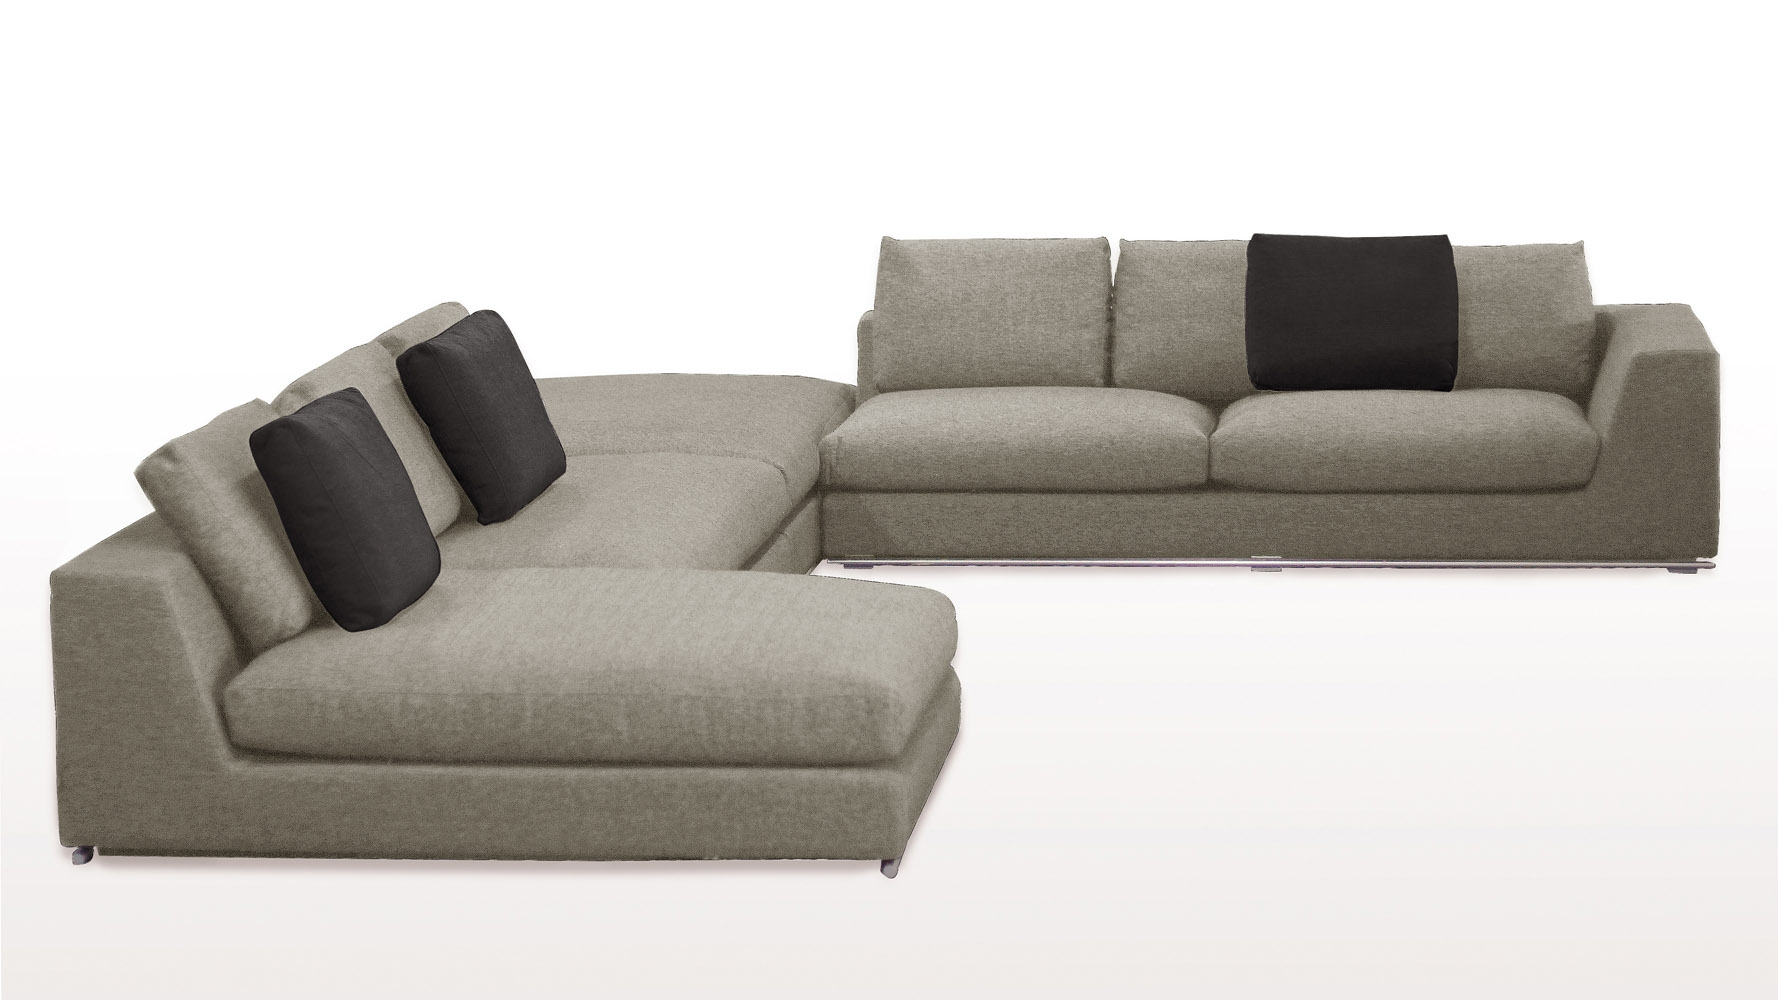 C Shaped Sectional Sofa Sofa Menzilperde Within C Shaped Sofas (View 8 of 12)